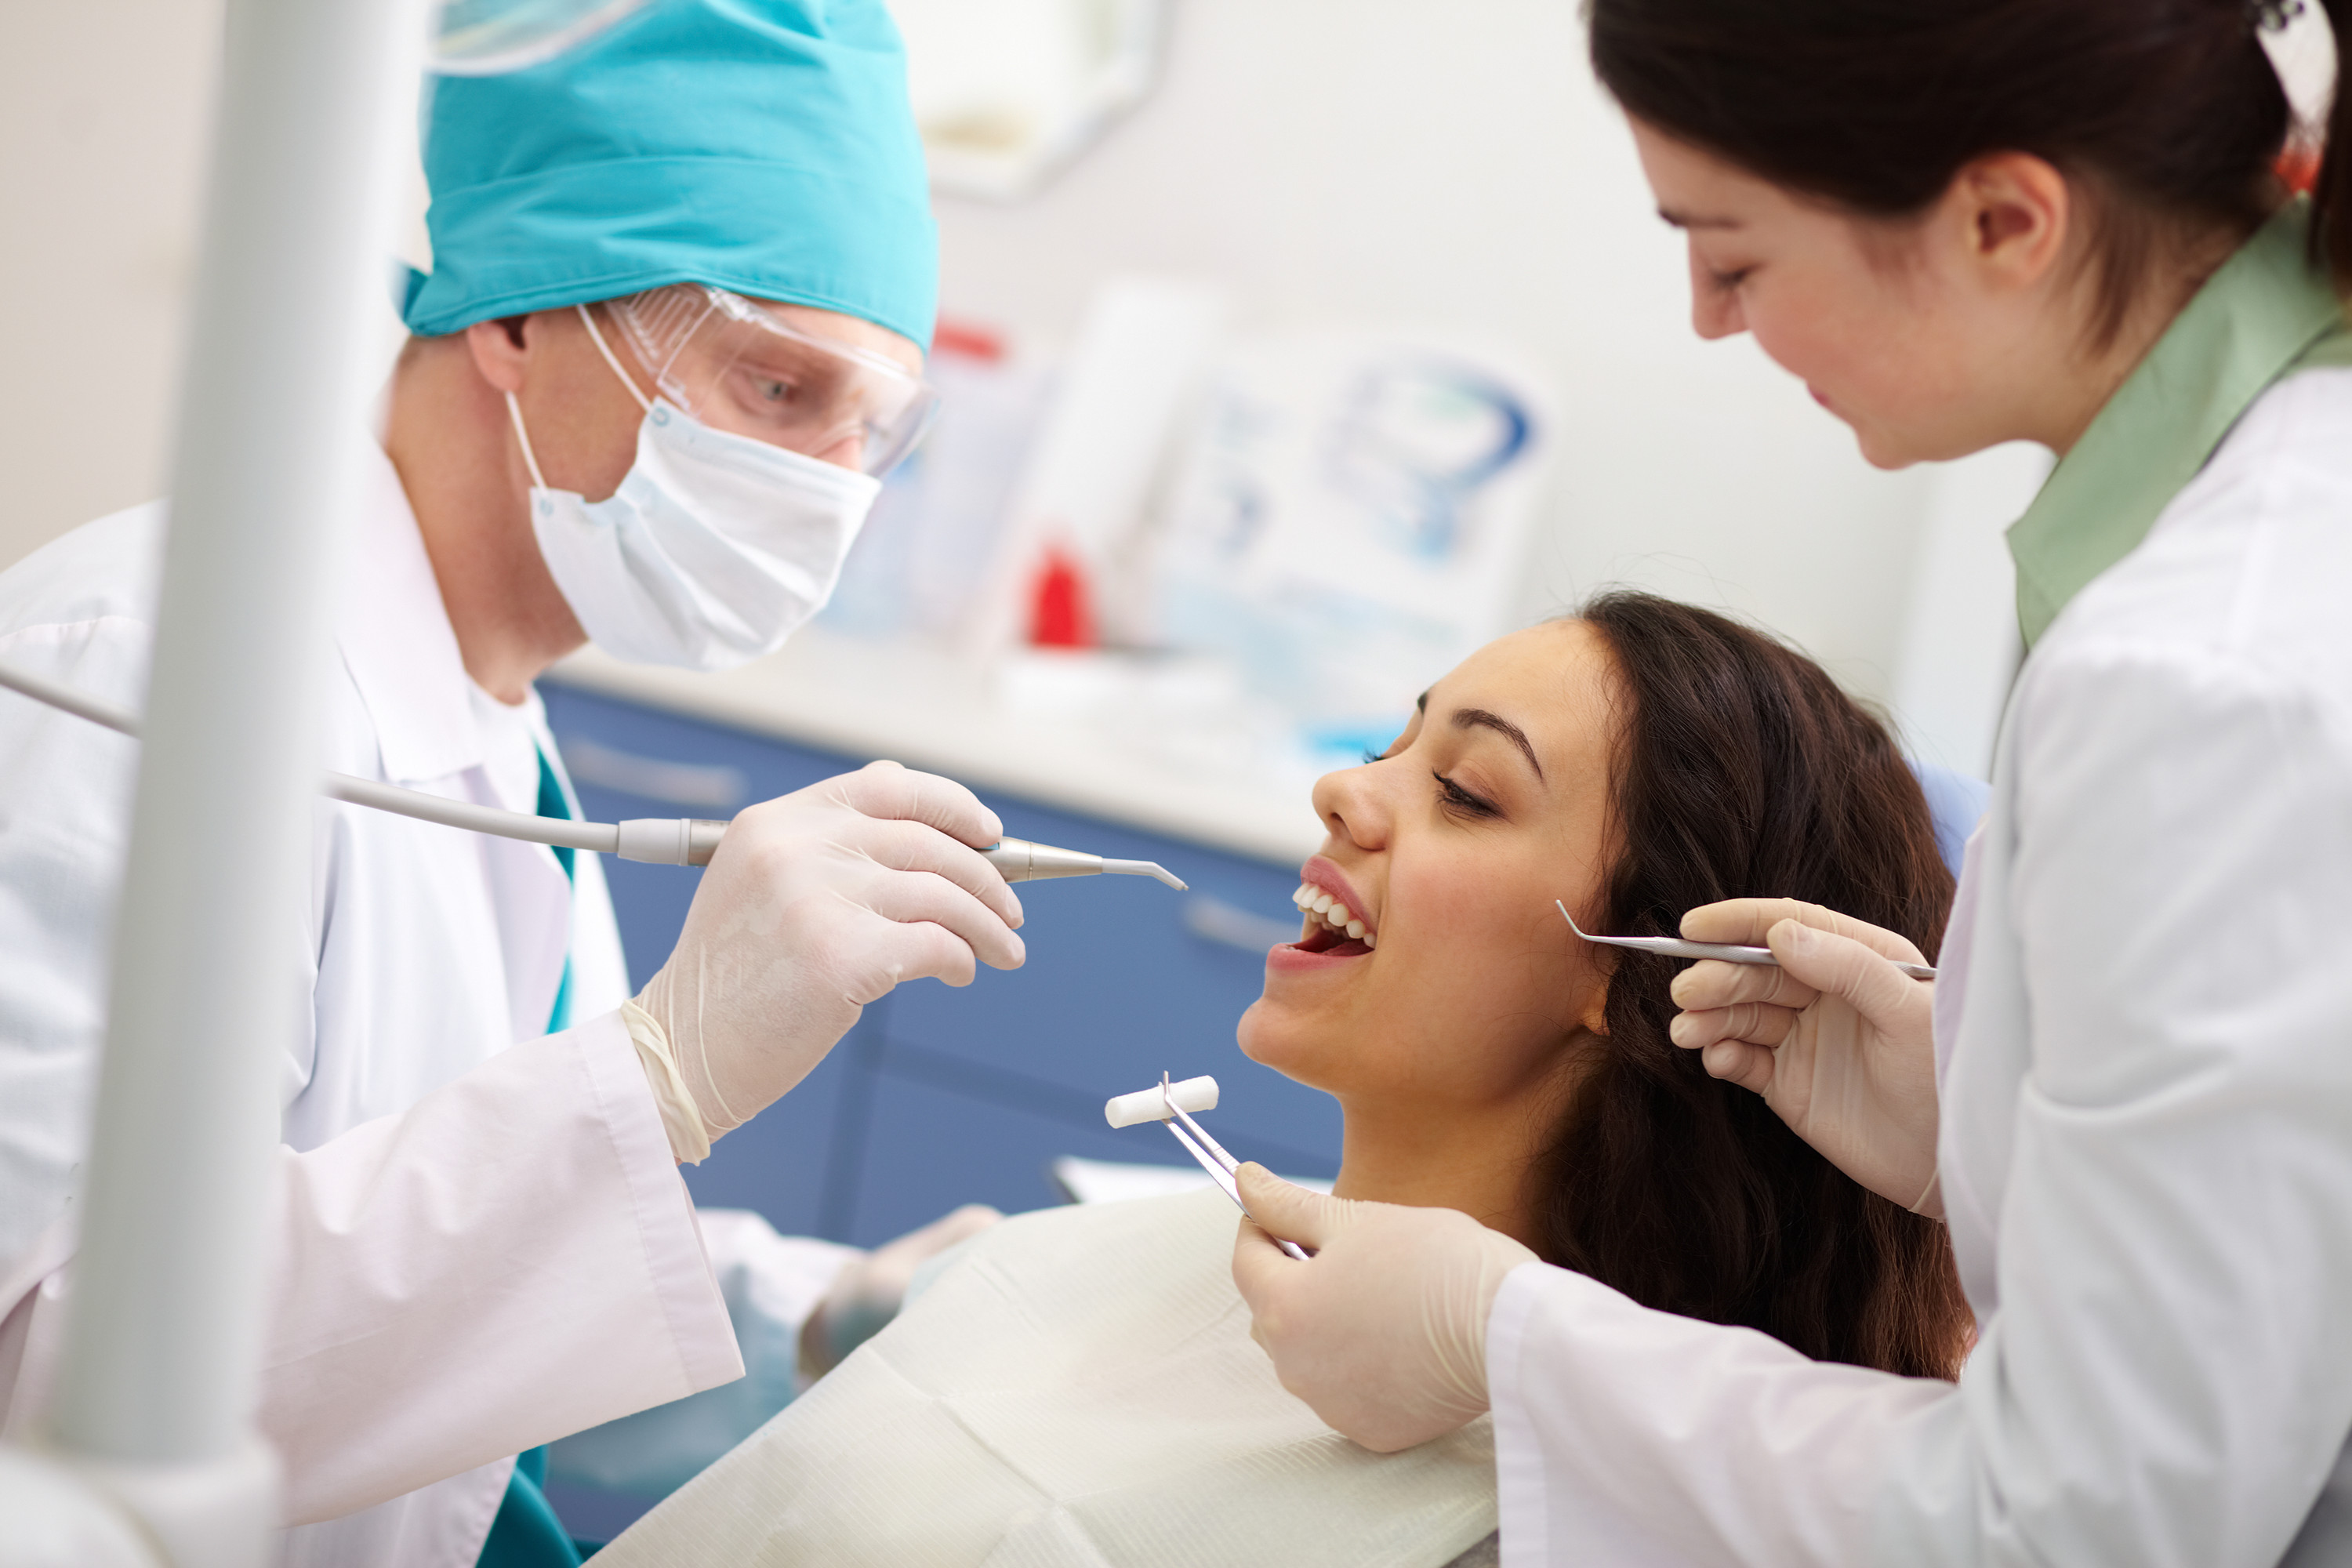 Have You Heard Of The NTI Dental Appliance For Headaches And TMJ?